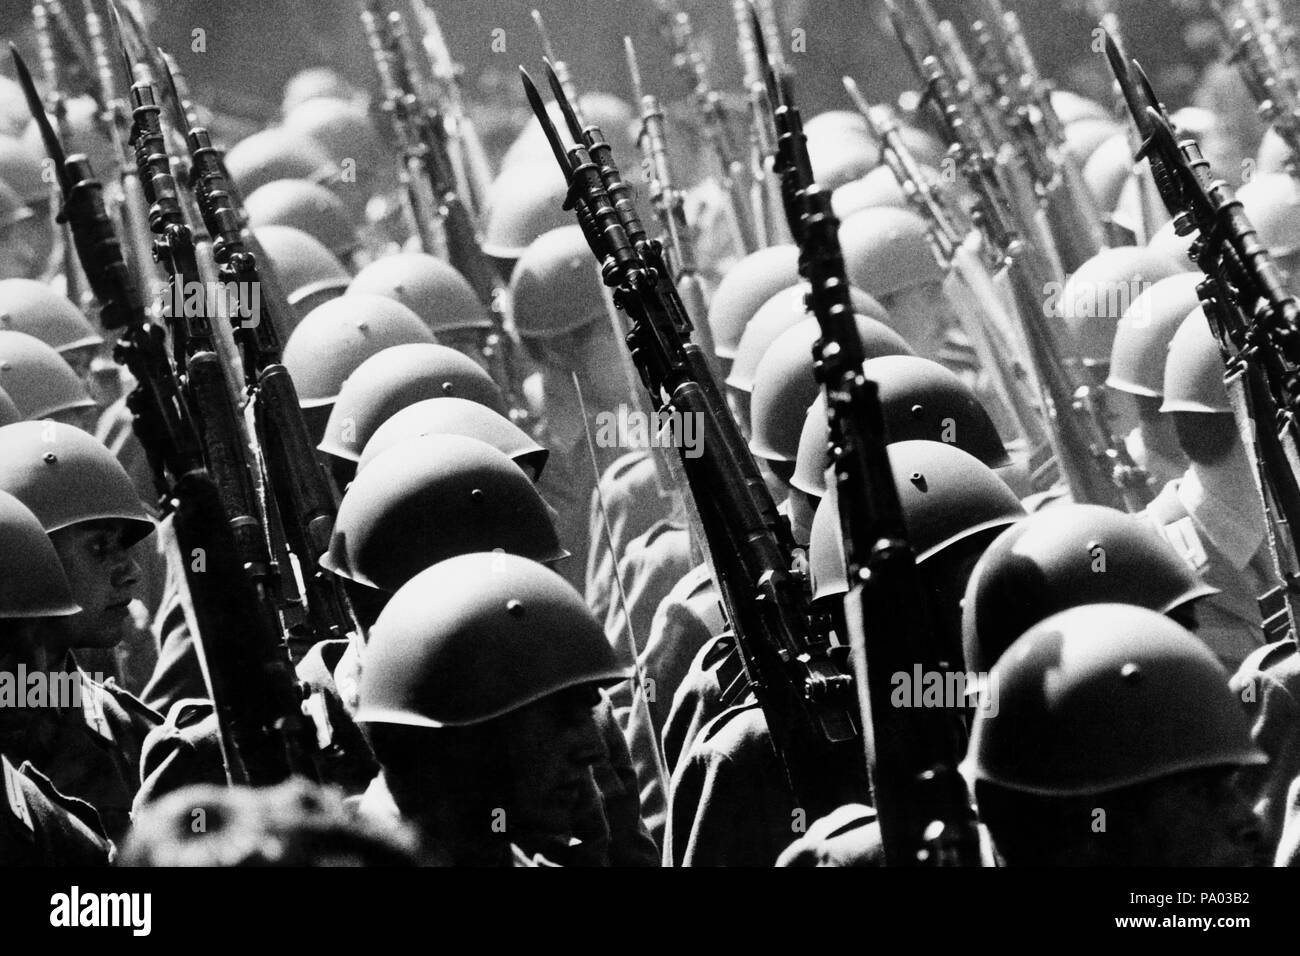 2nd of June, the feast of the Italian republic, military parade, Rome 70s - Stock Image